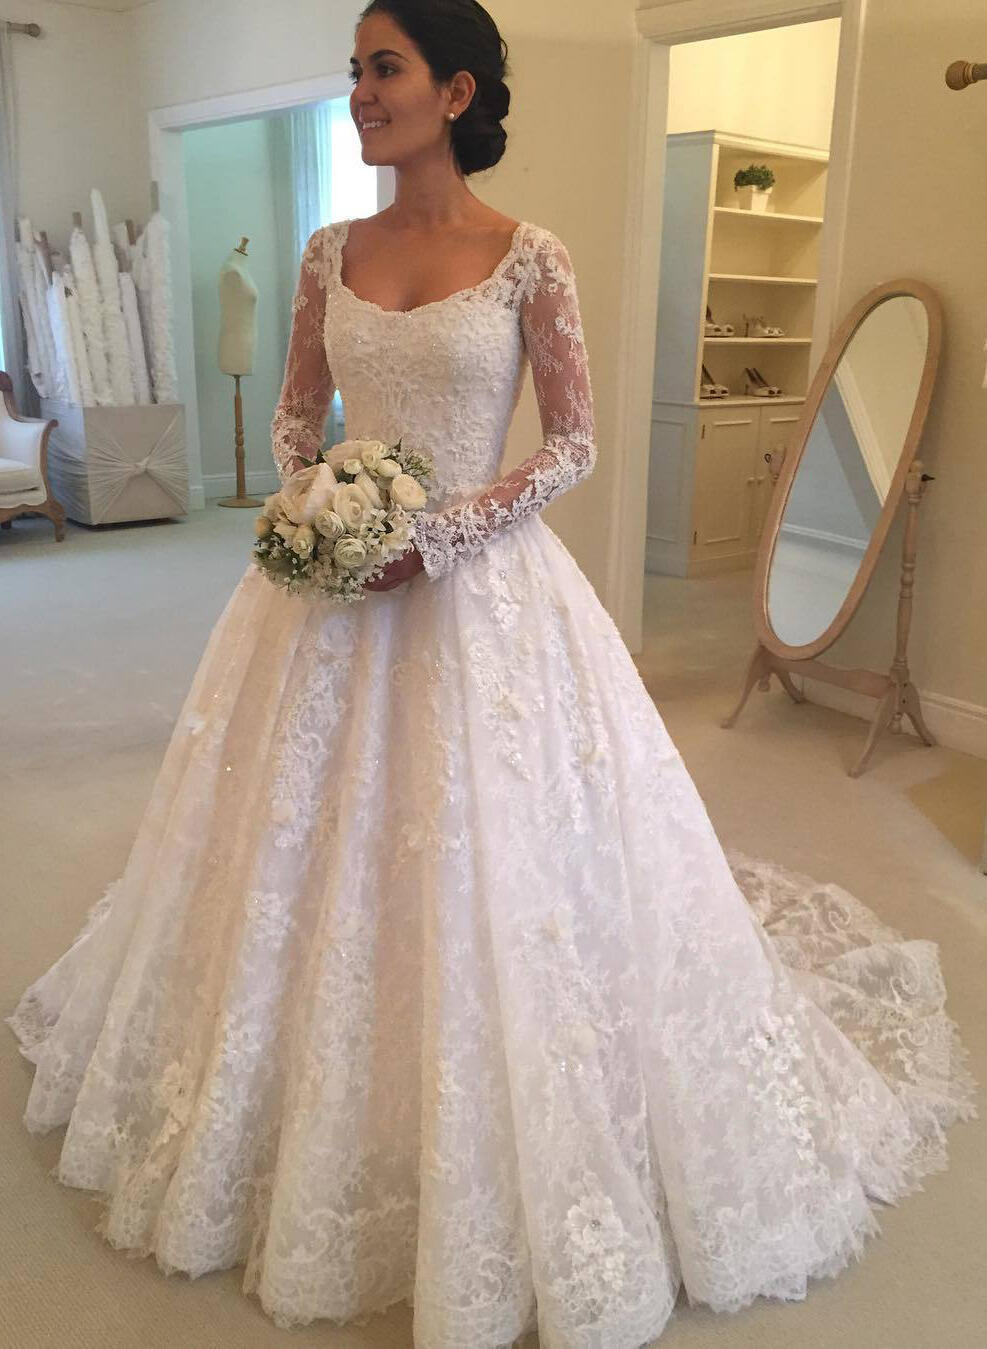 Lace Wedding Dress With Sleeves.Luxurious Ruffle Ball Gown With Lace Wedding Dresses 002147849